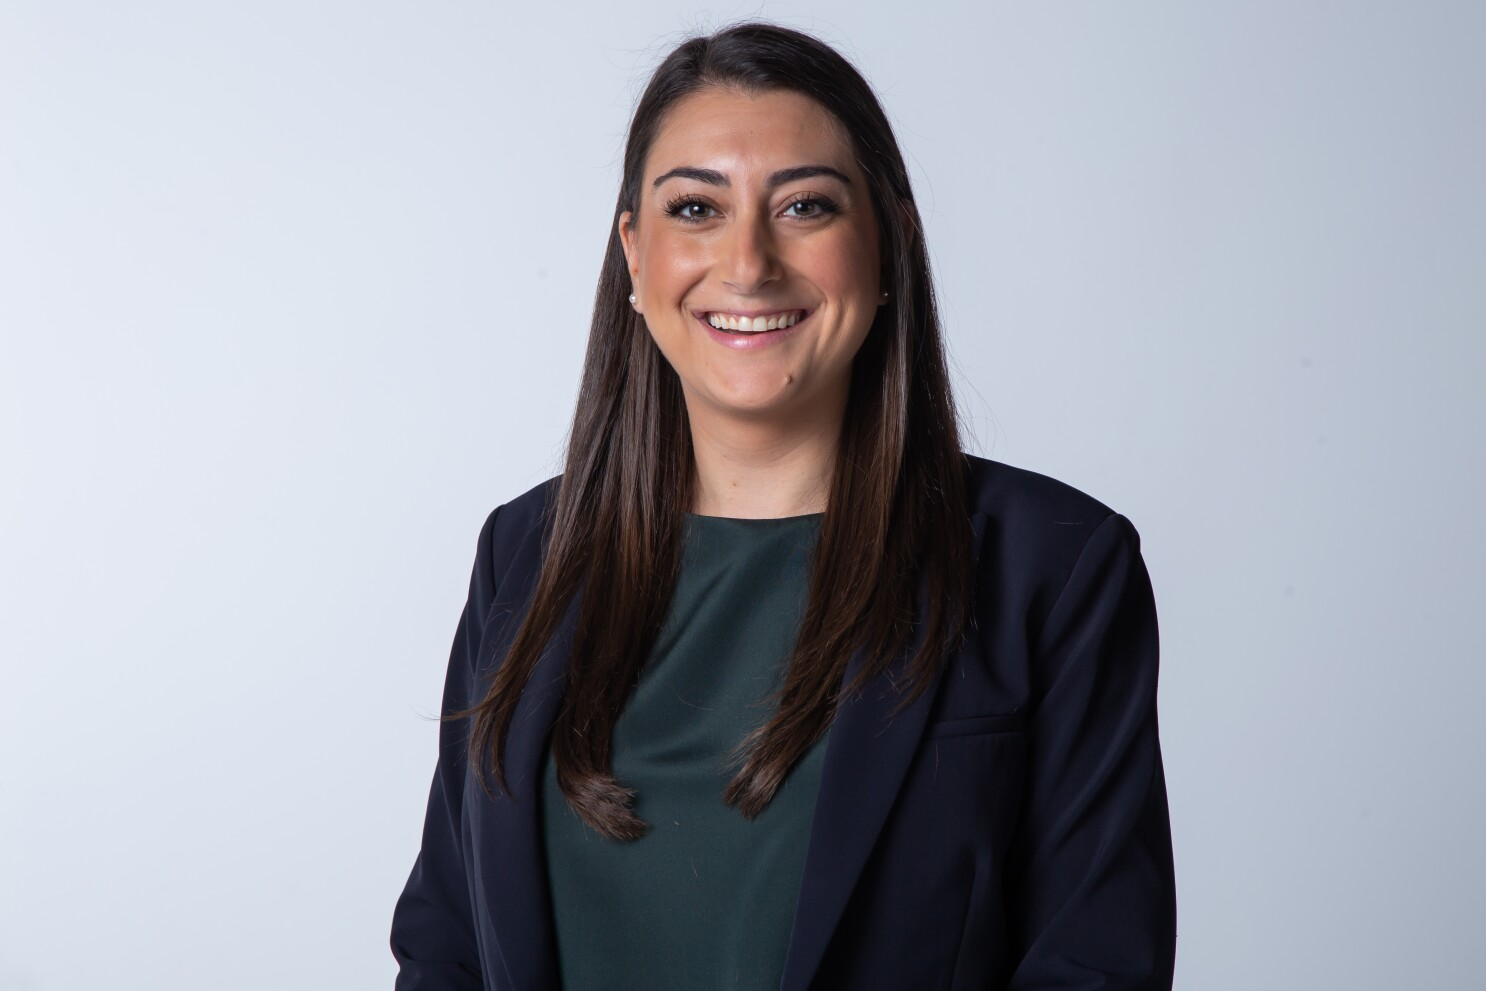 Q&A: Sara Jacobs, candidate for the 53rd Congressional District